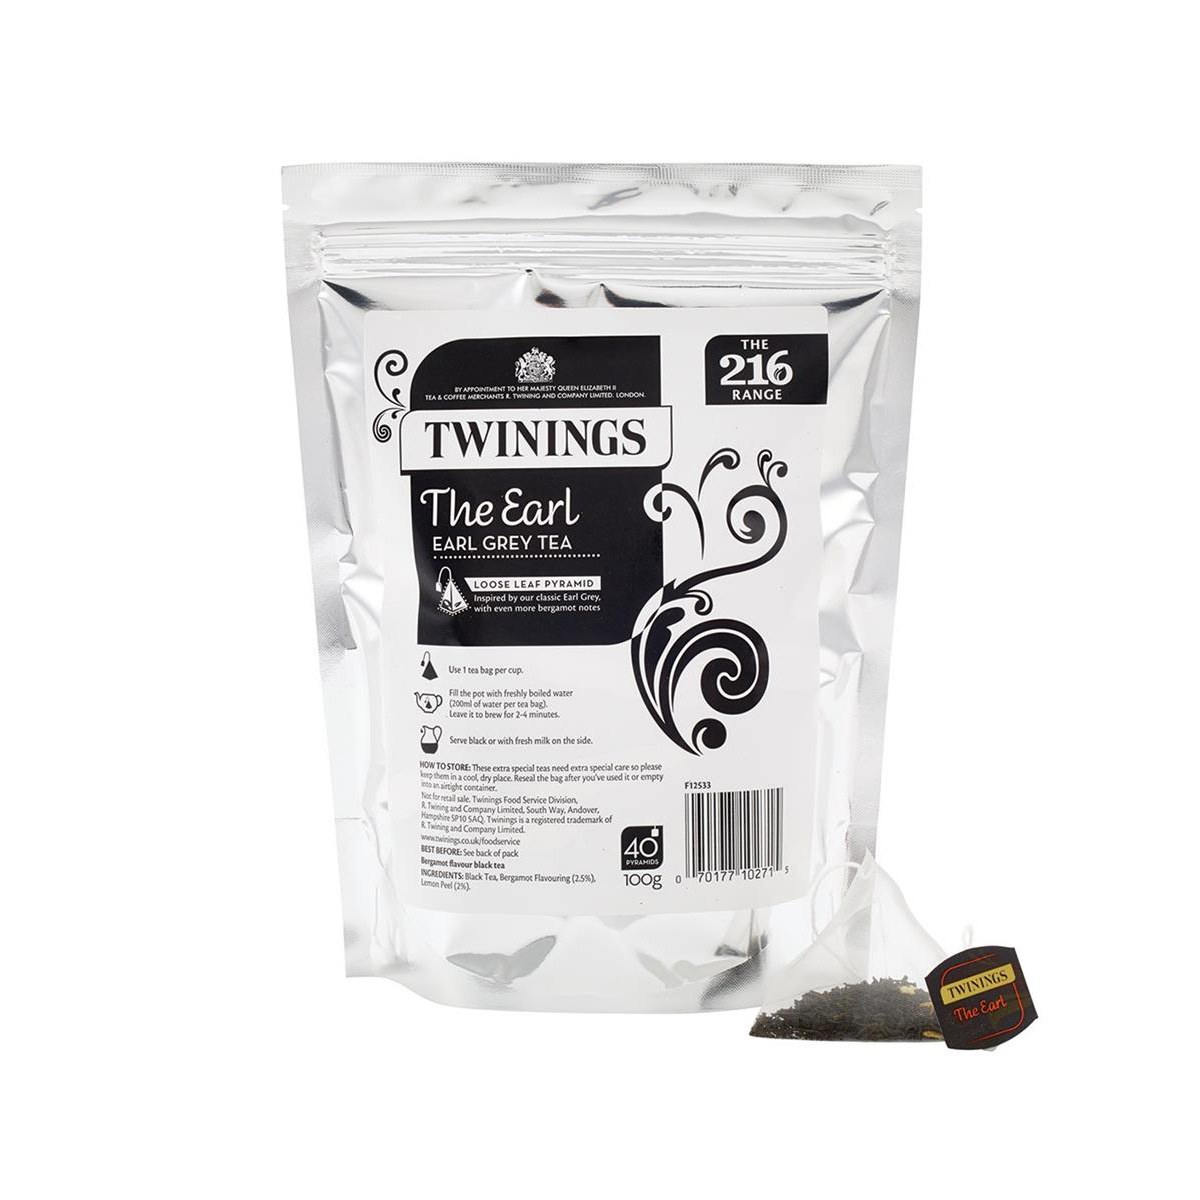 Twinings Tea Luxury Pyramid Teabags The Earl Pouch Ref 0403303 40 Bags